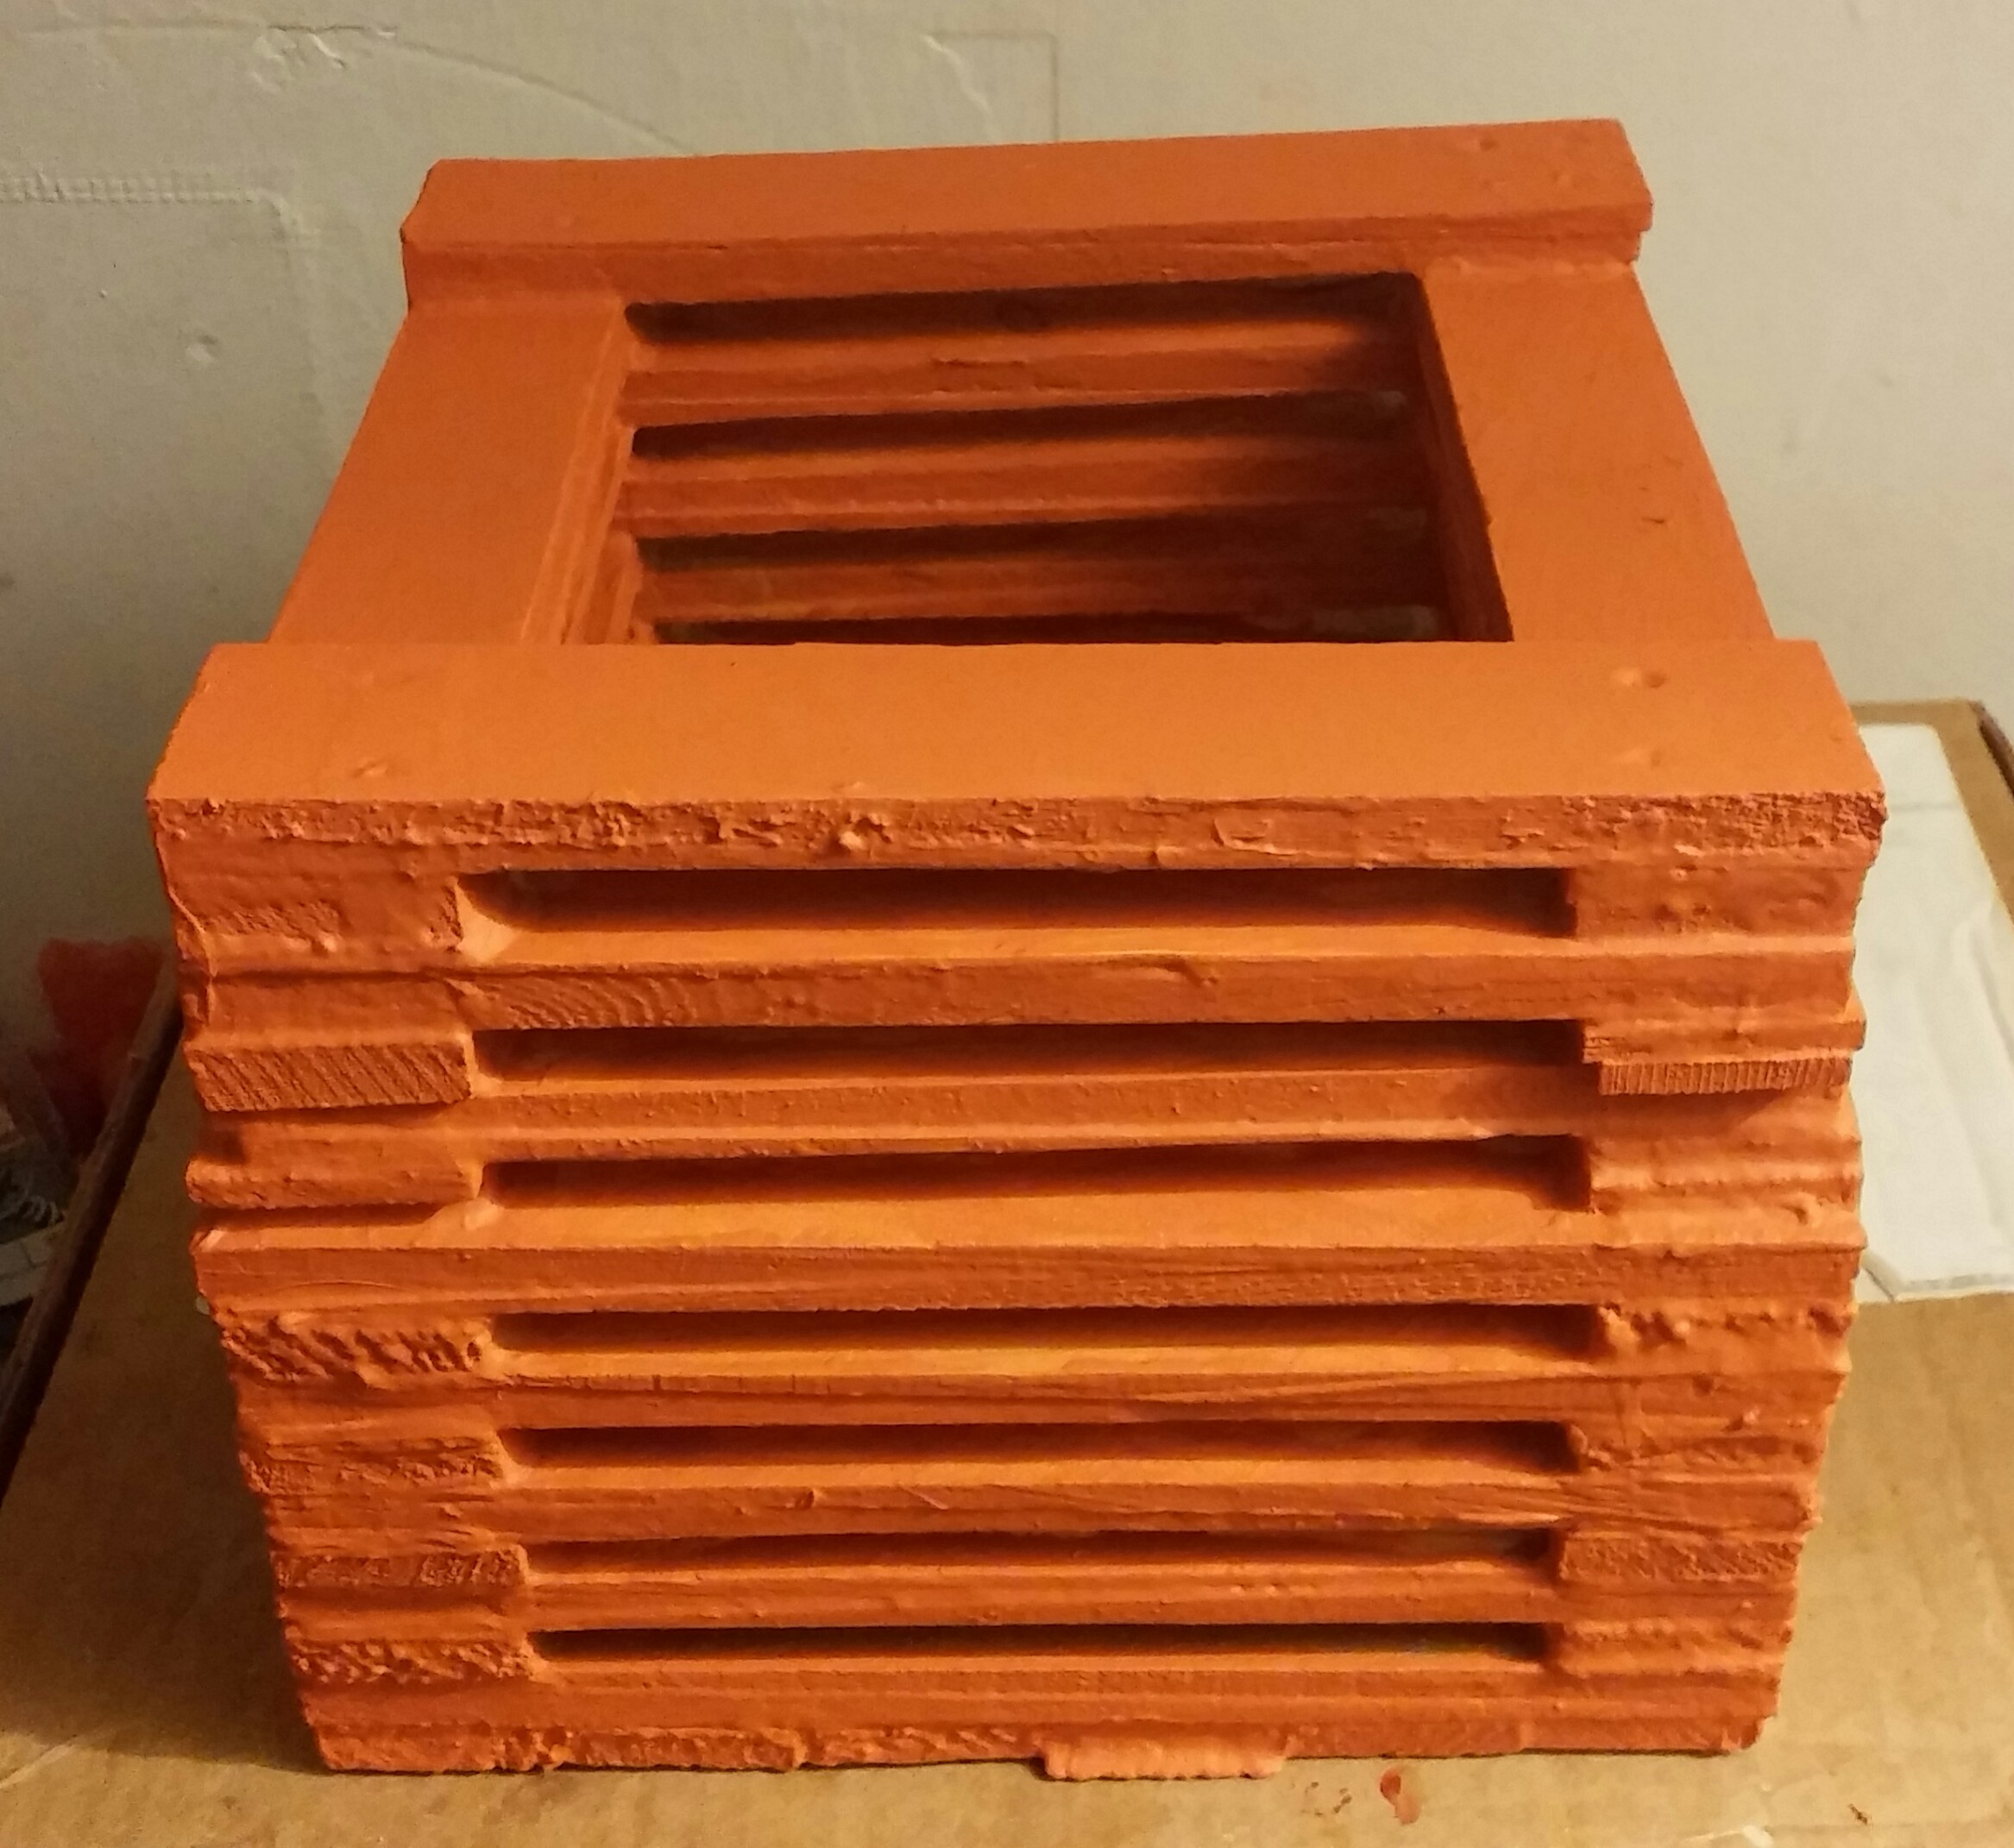 Picture of Box Made From Wood Shims - Version 2